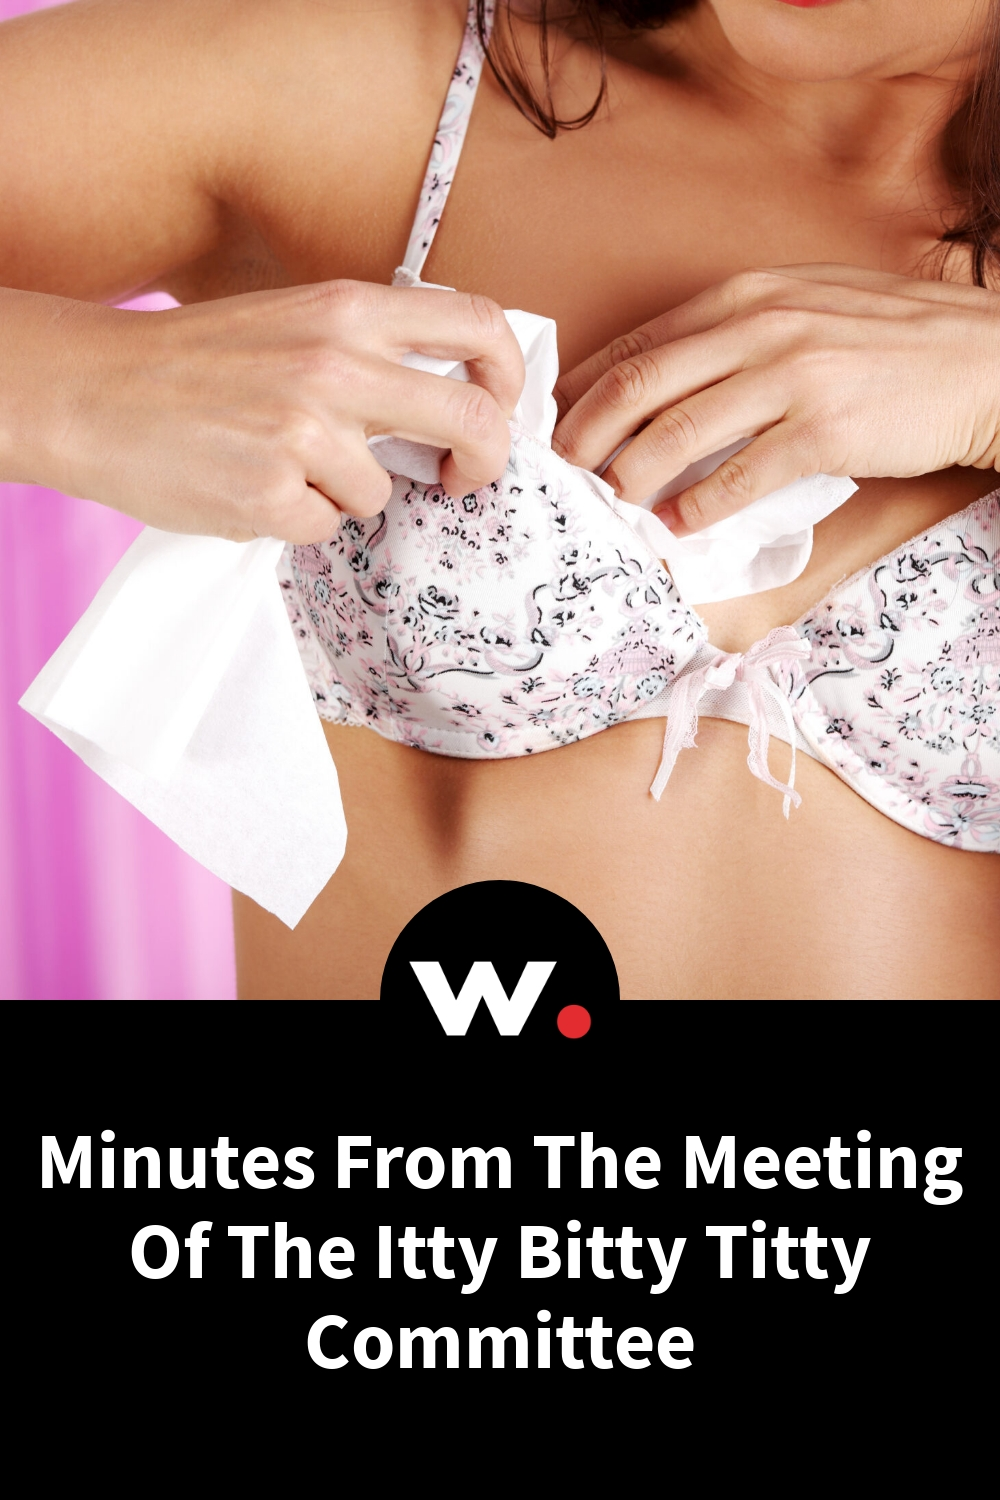 Minutes From The Meeting Of The Itty Bitty Titty Committee